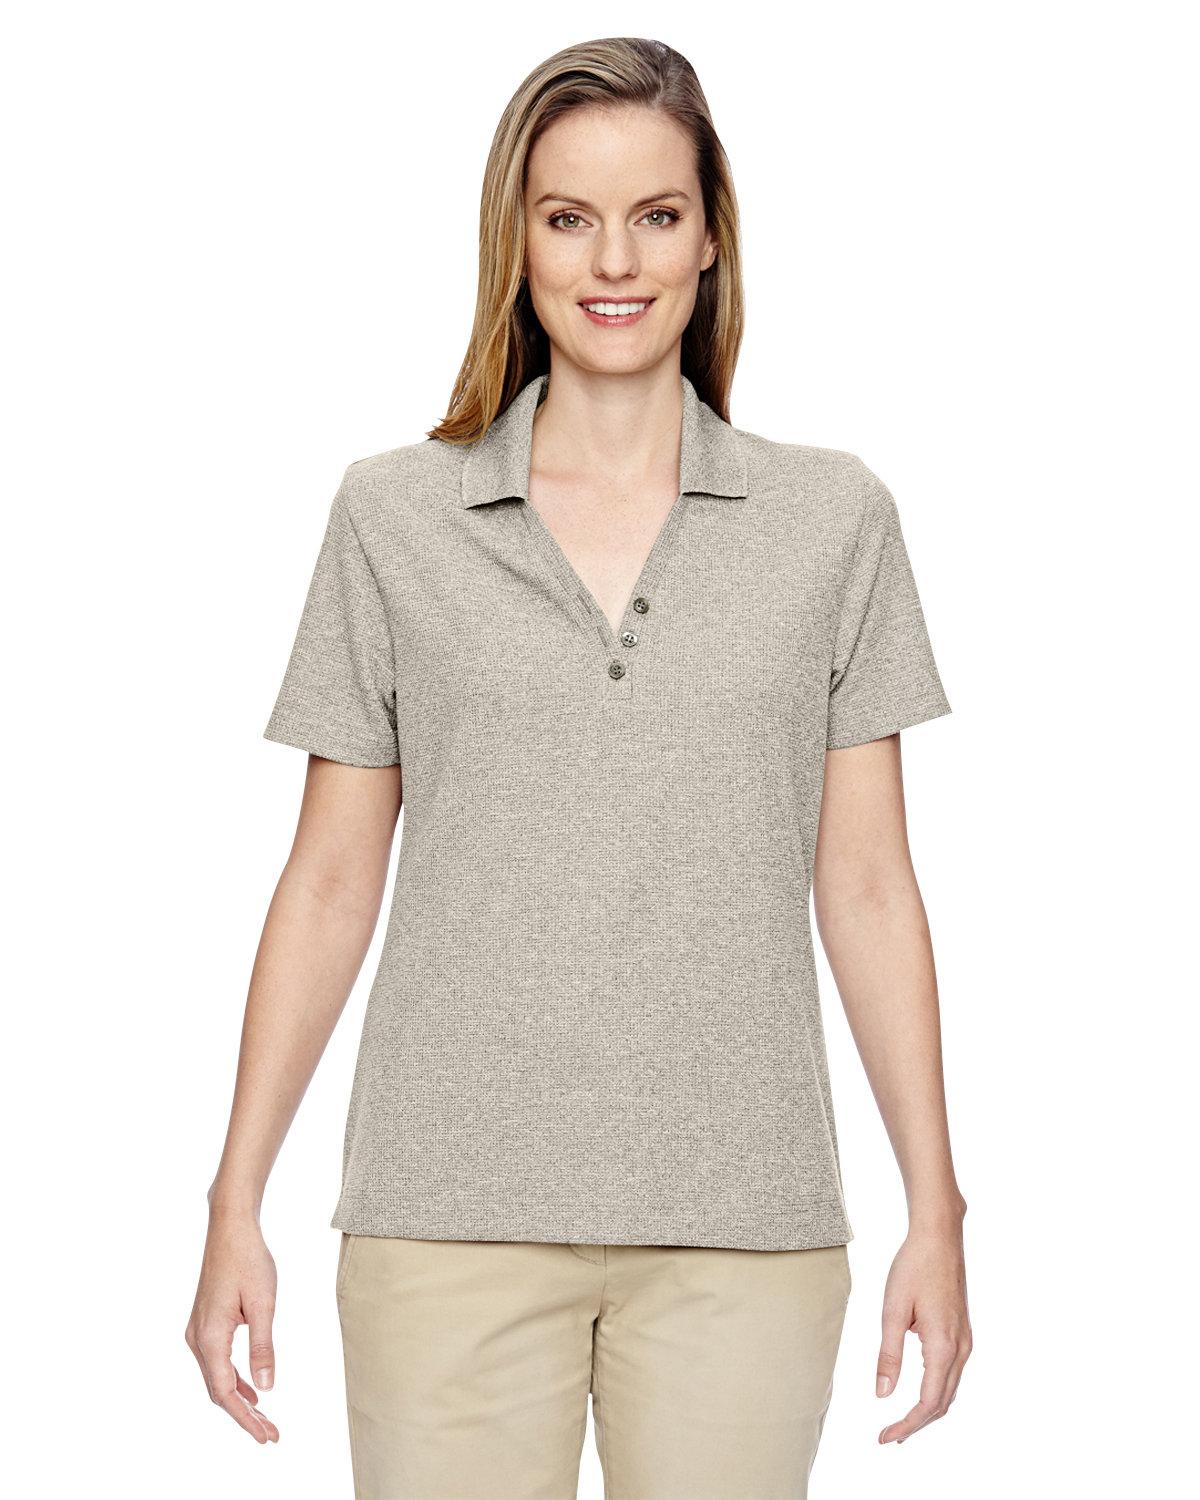 North End Ladies' Excursion Nomad Performance Waffle Polo STONE